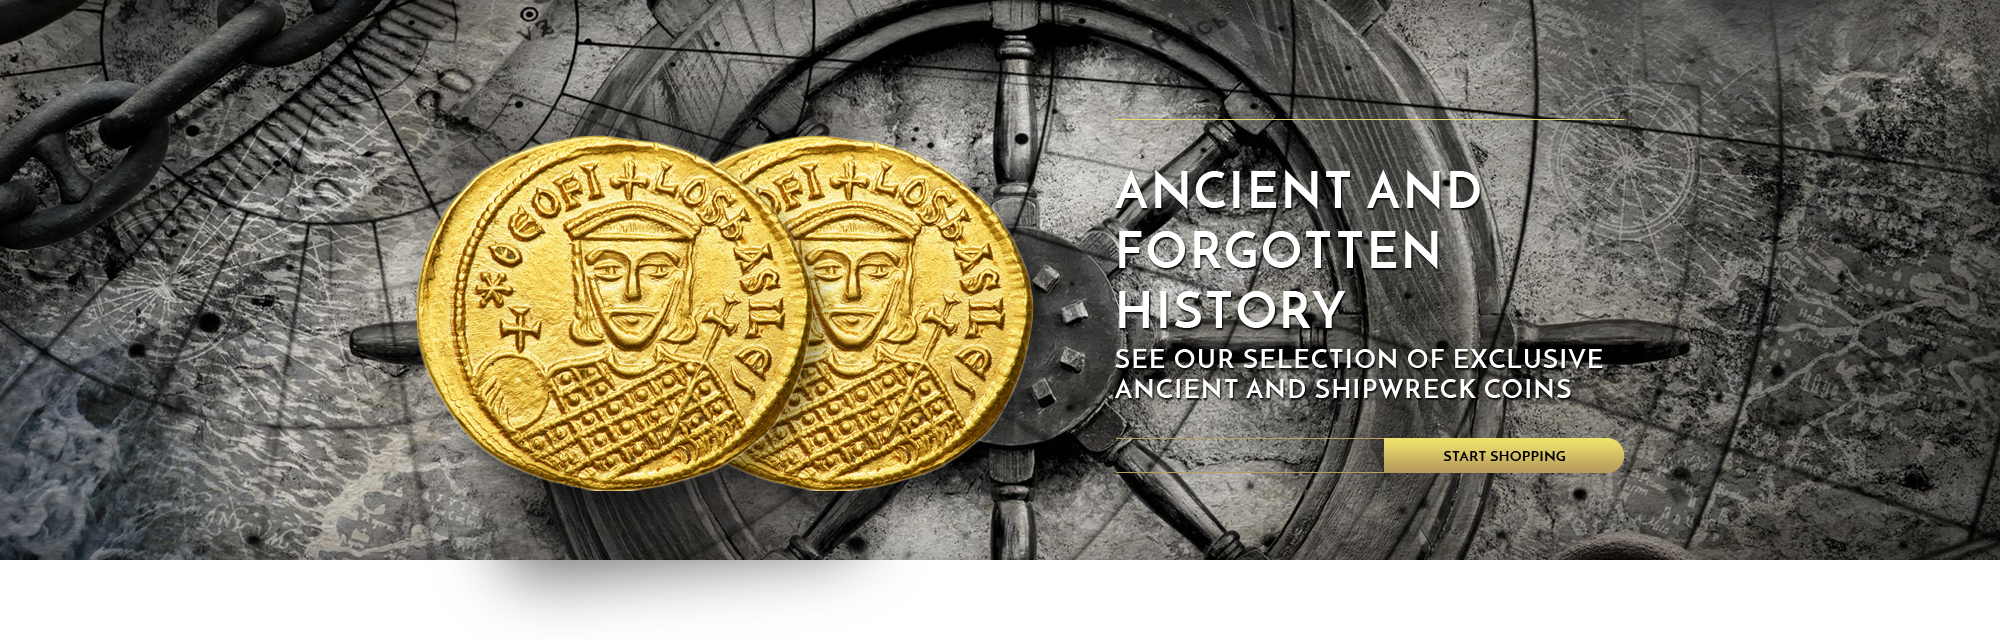 Ancient and forgotten history - See our selection of exclusive Ancient and Shipwreck coins - start shopping